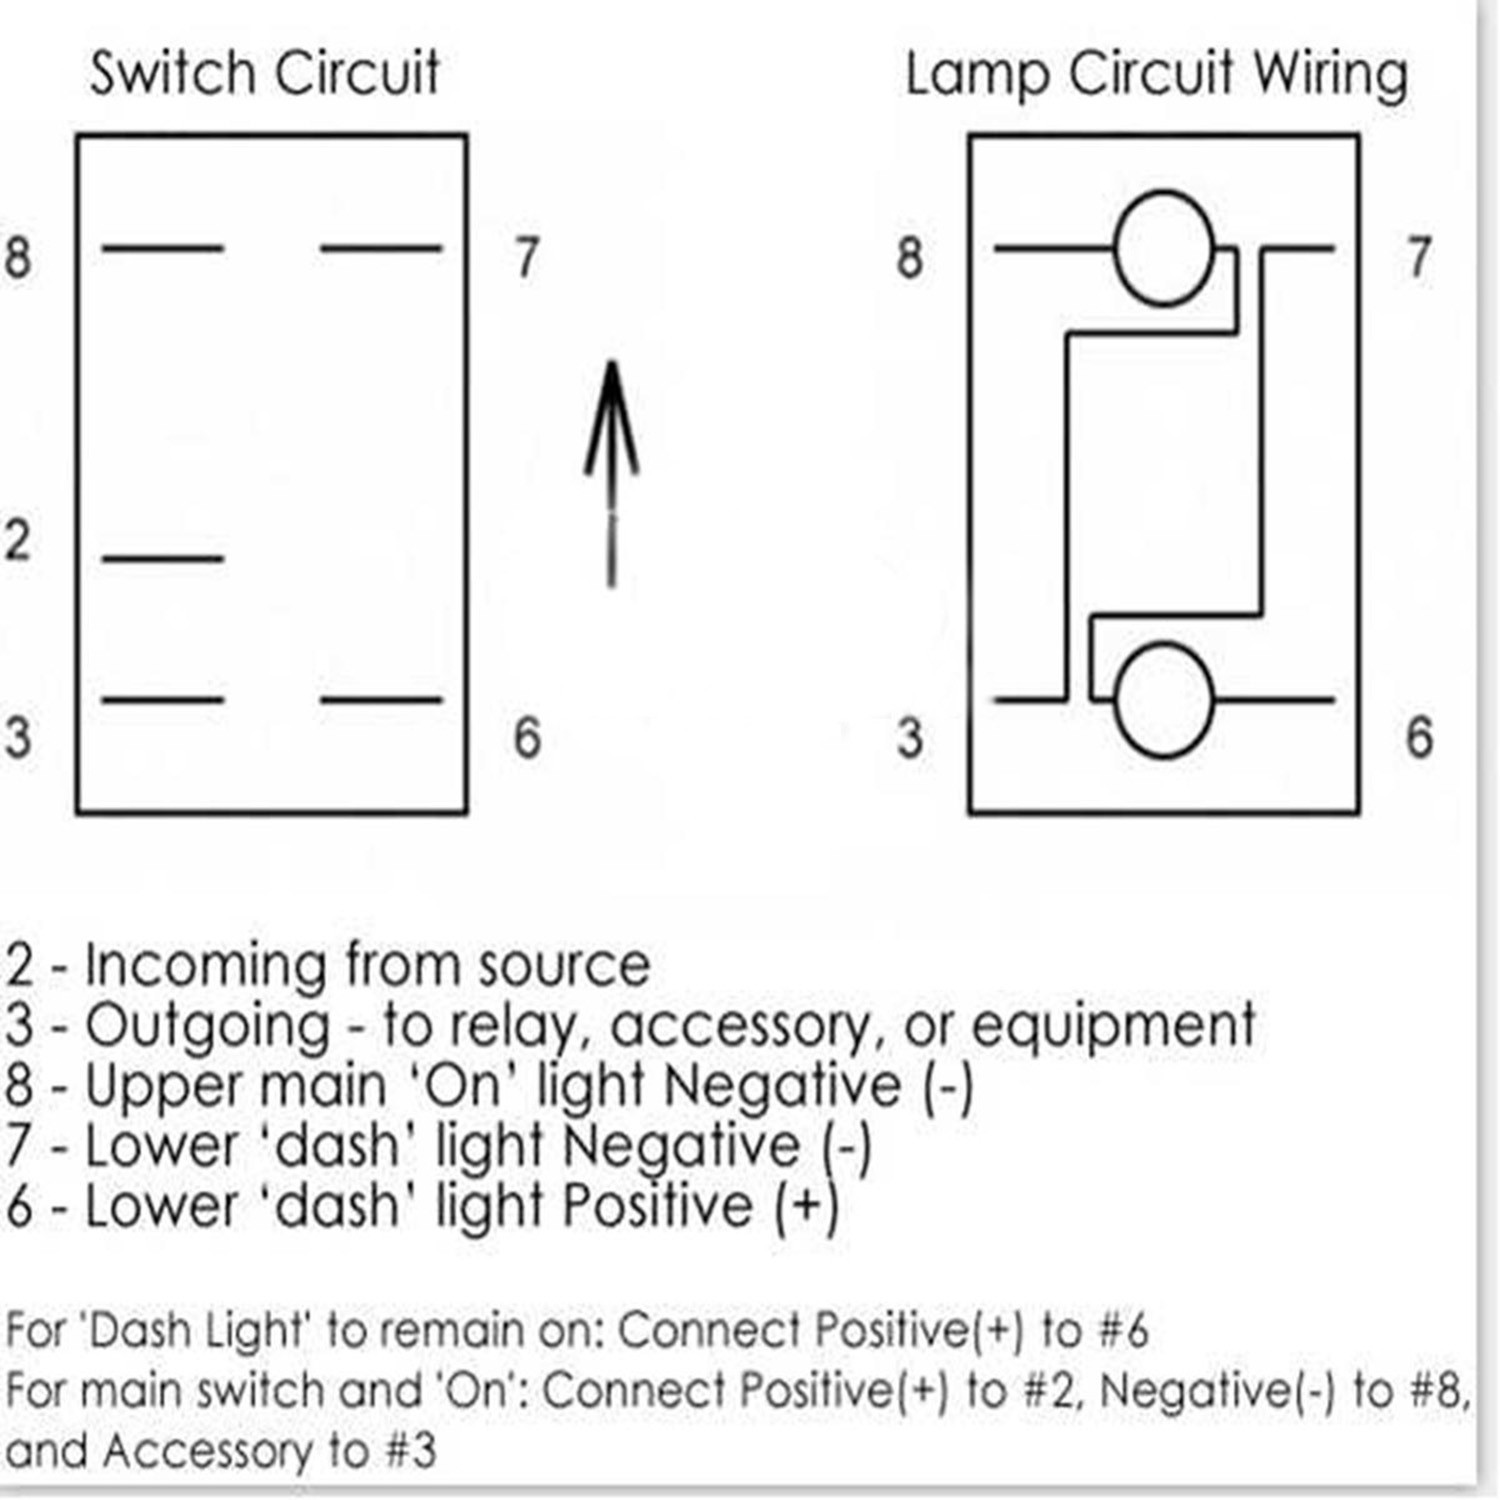 Power Window Switch Diagram Seats Wiring For 2004 Mitsubishi Endeavor 5 Pin Best Simple Of